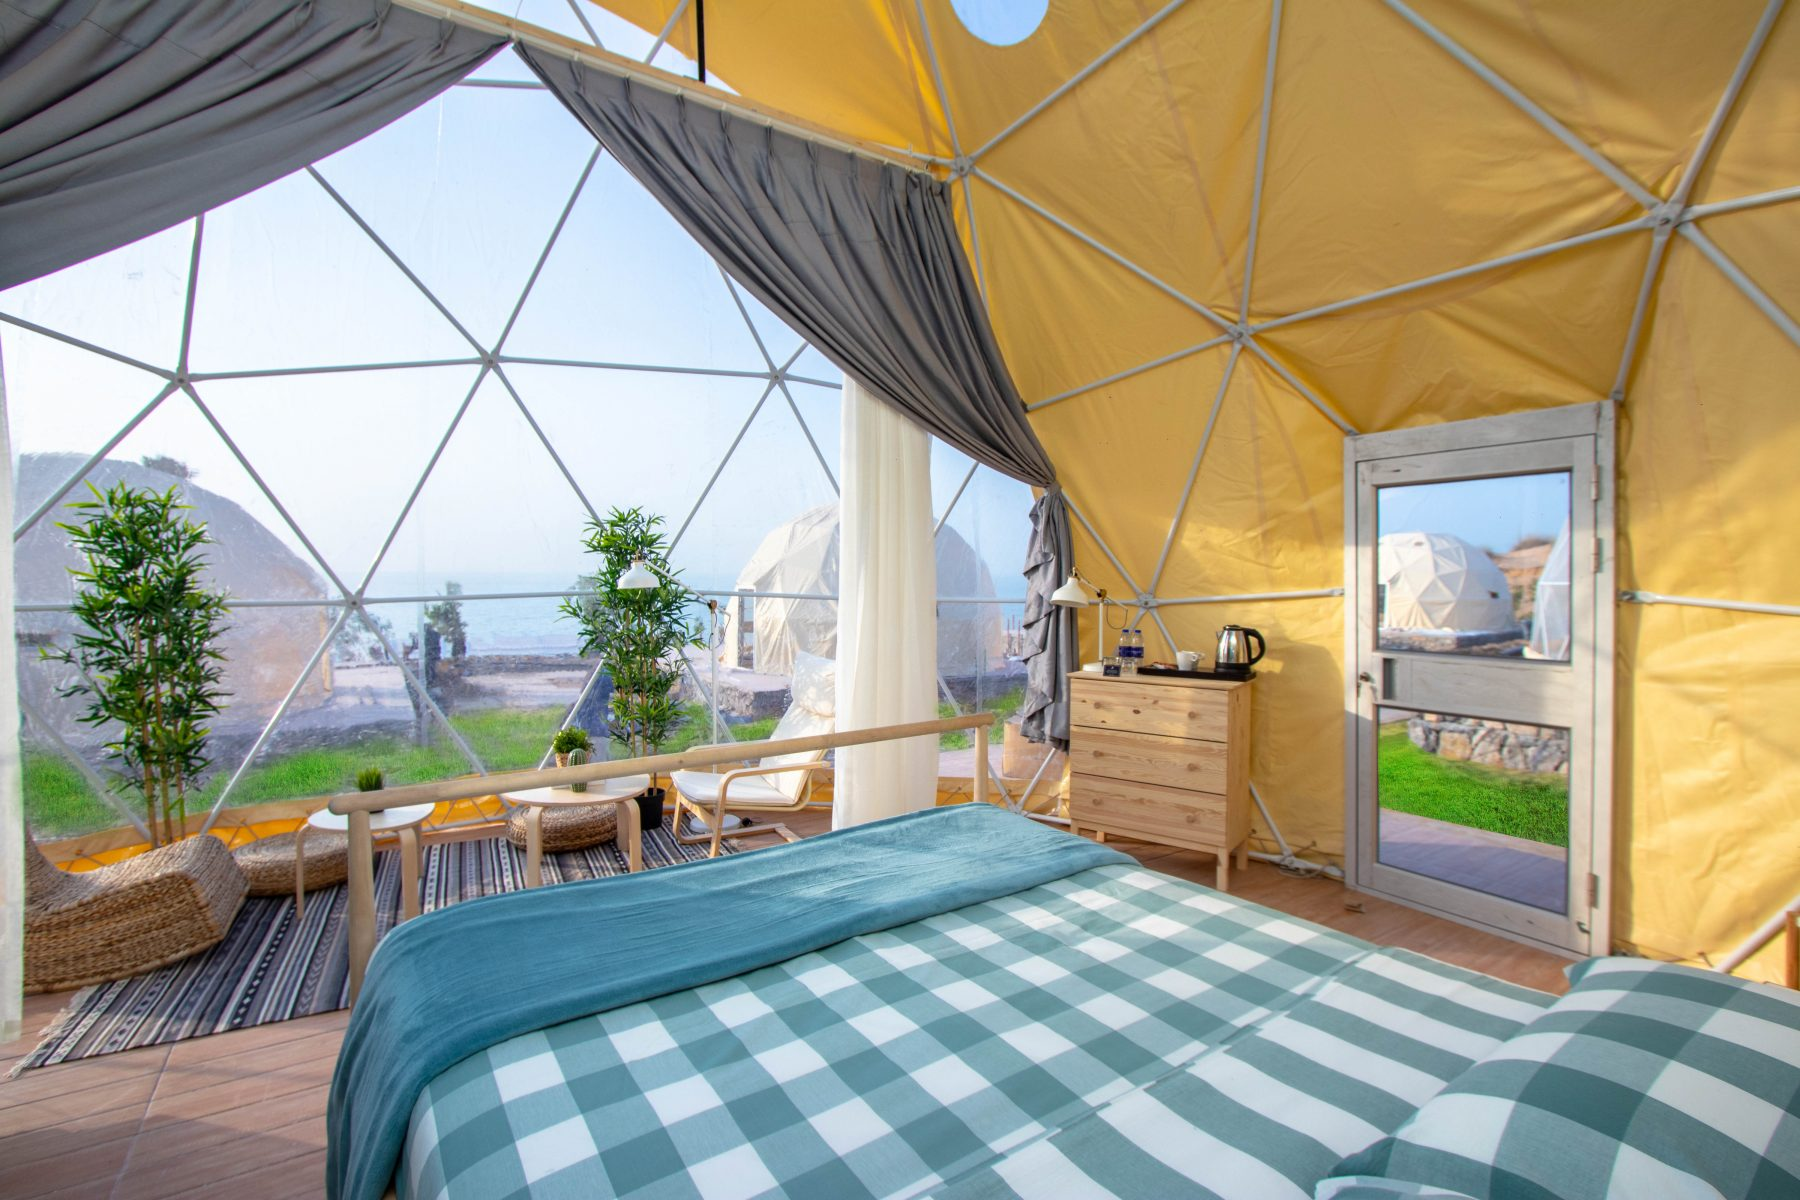 Glamping at Longbeach Campground - Luxe Adventure in the UAE